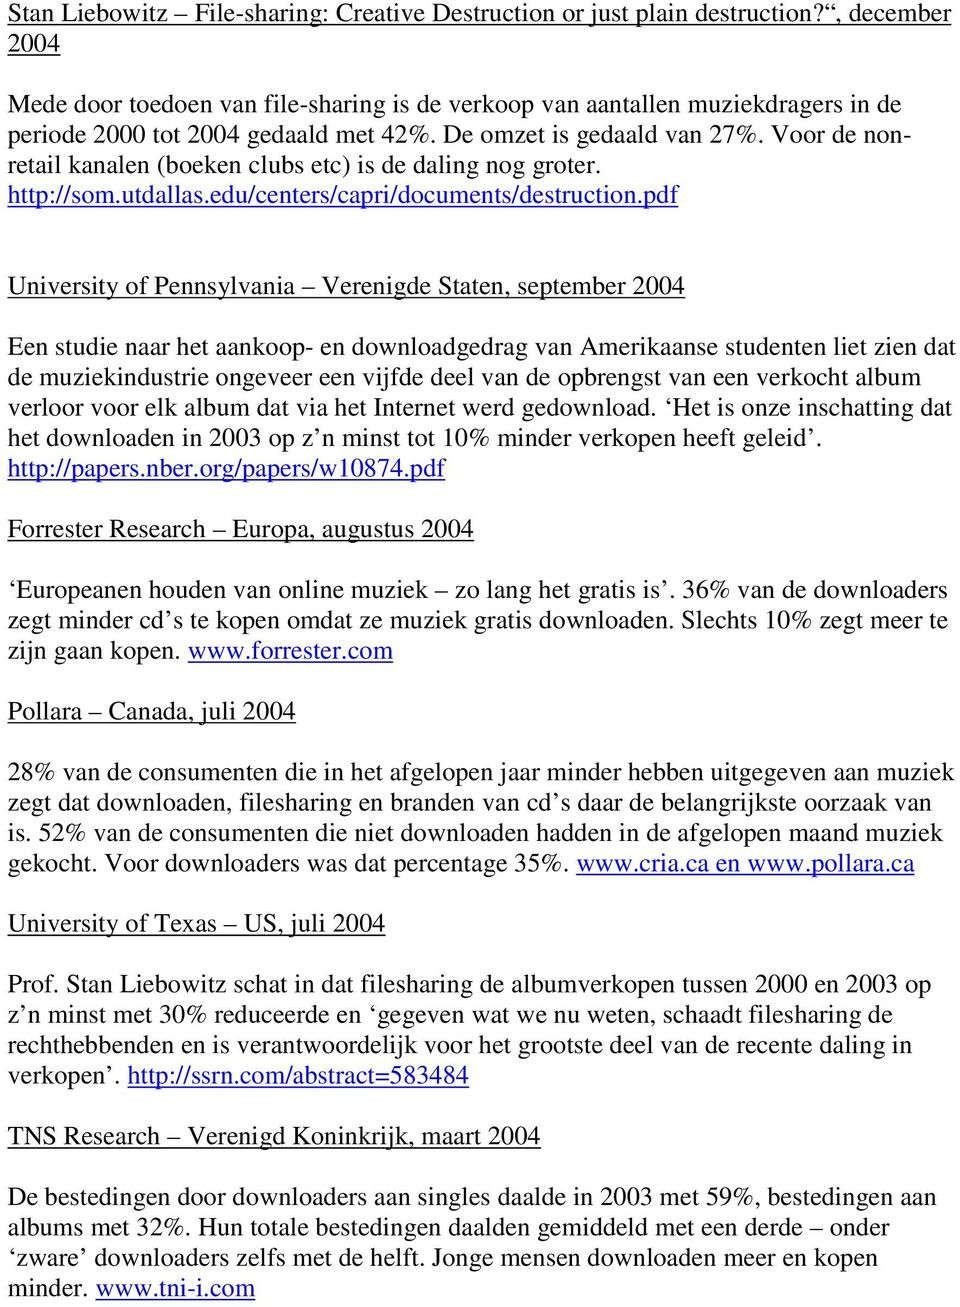 Voor de nonretail kanalen (boeken clubs etc) is de daling nog groter. http://som.utdallas.edu/centers/capri/documents/destruction.